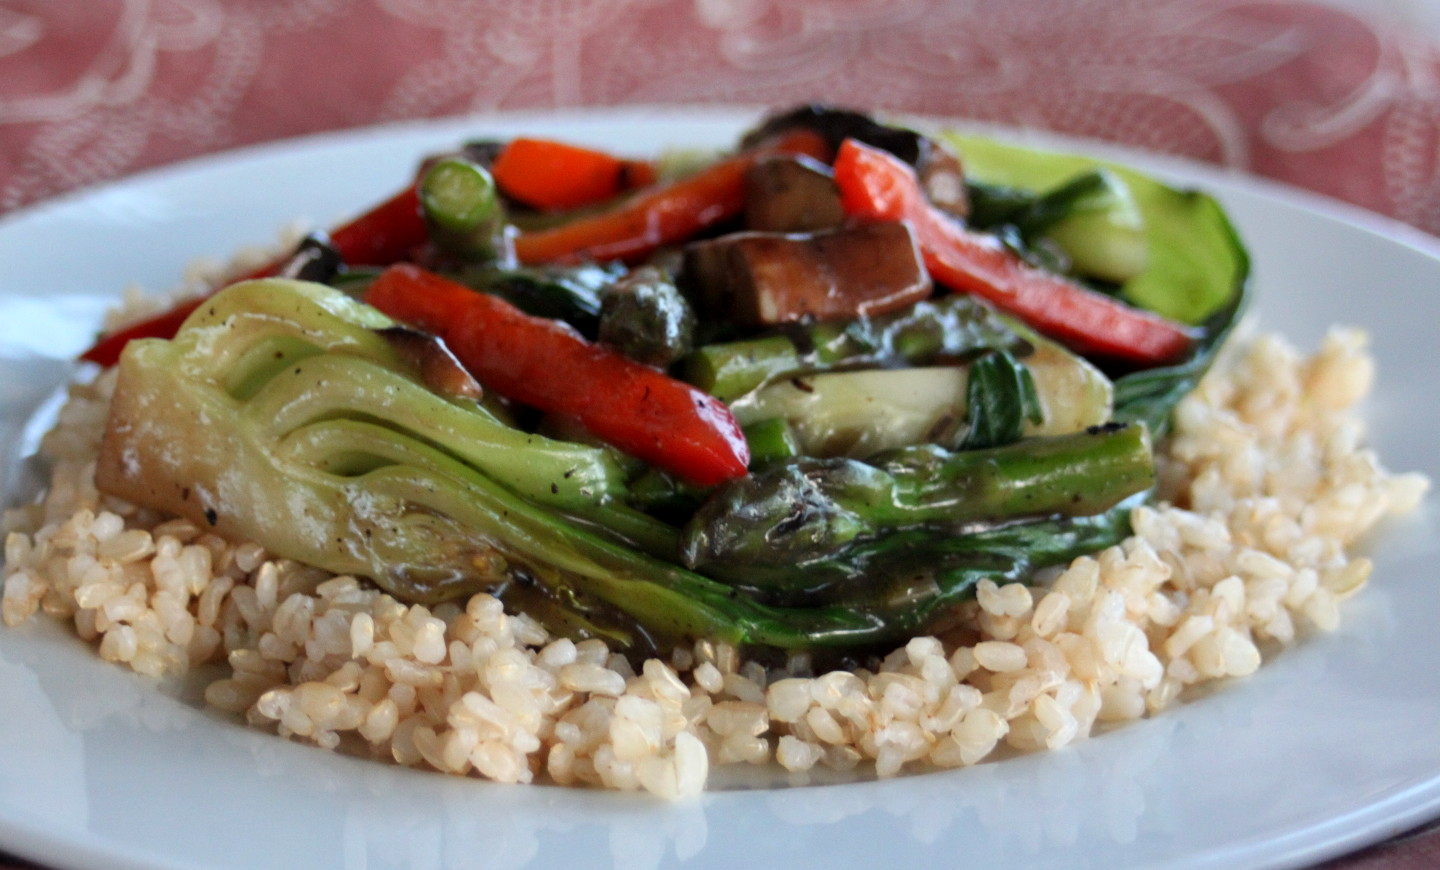 Hoopfinity's Happenings: Vegan Treats: Baby Bok Choy Stir Fry